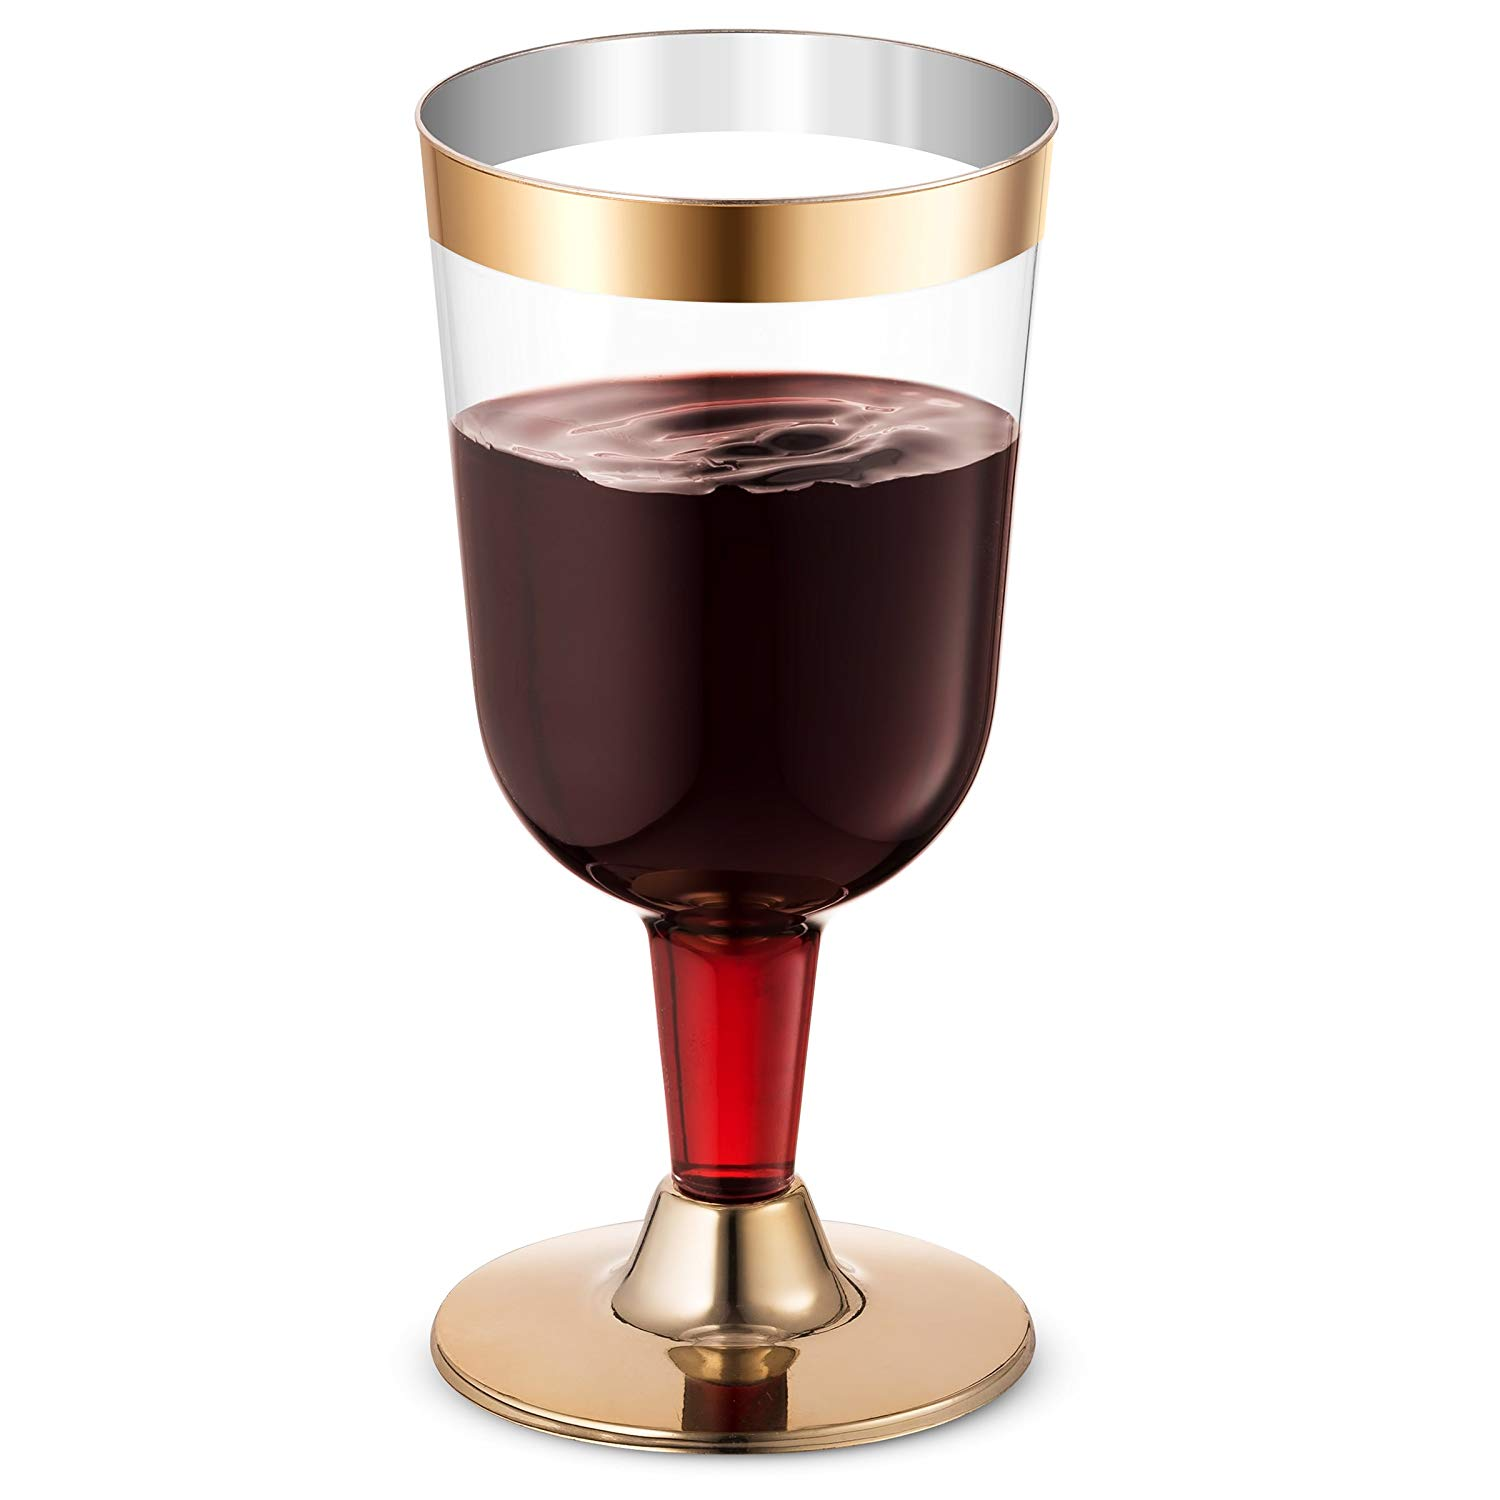 Gold Plastic Wine Glass Wine Cups -Clear Elegant Disposable Cups with Gold Rim- Durable Party Wedding Plastic Cups-25Pack